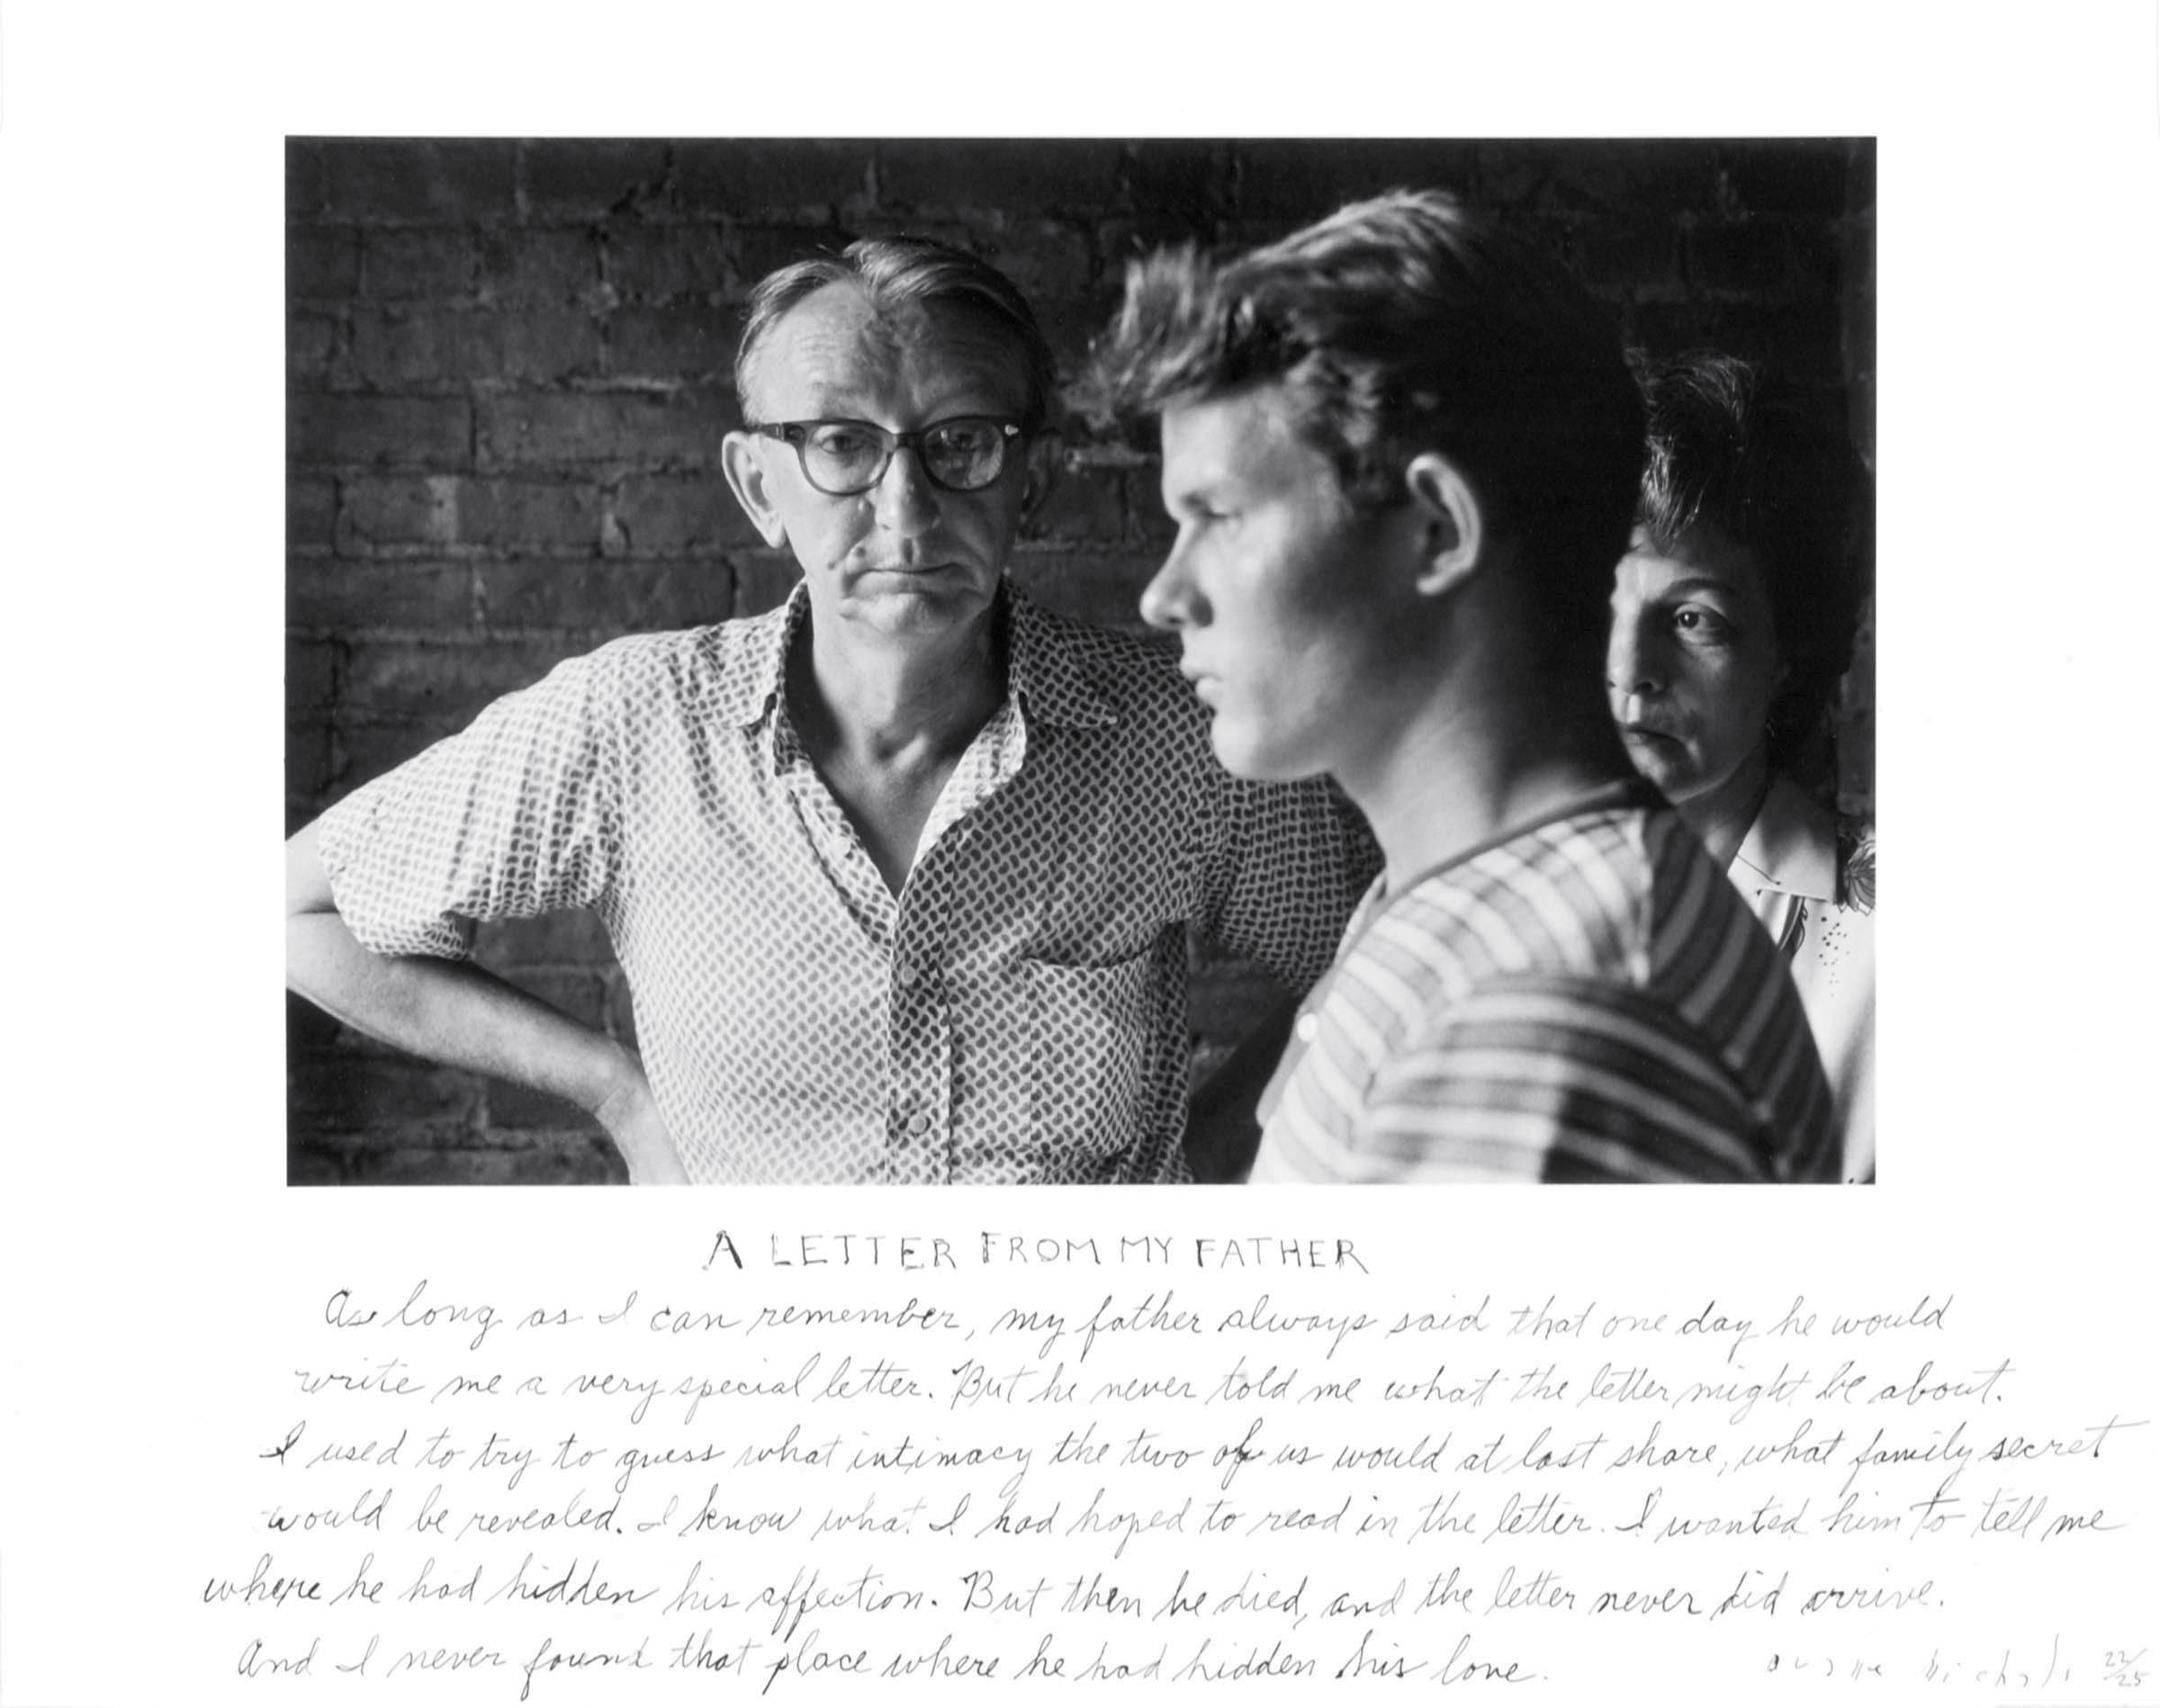 Letter-from-my-Father. All images of Duane Michals' photos are courtesy of the artist and DC Moore Gallery.